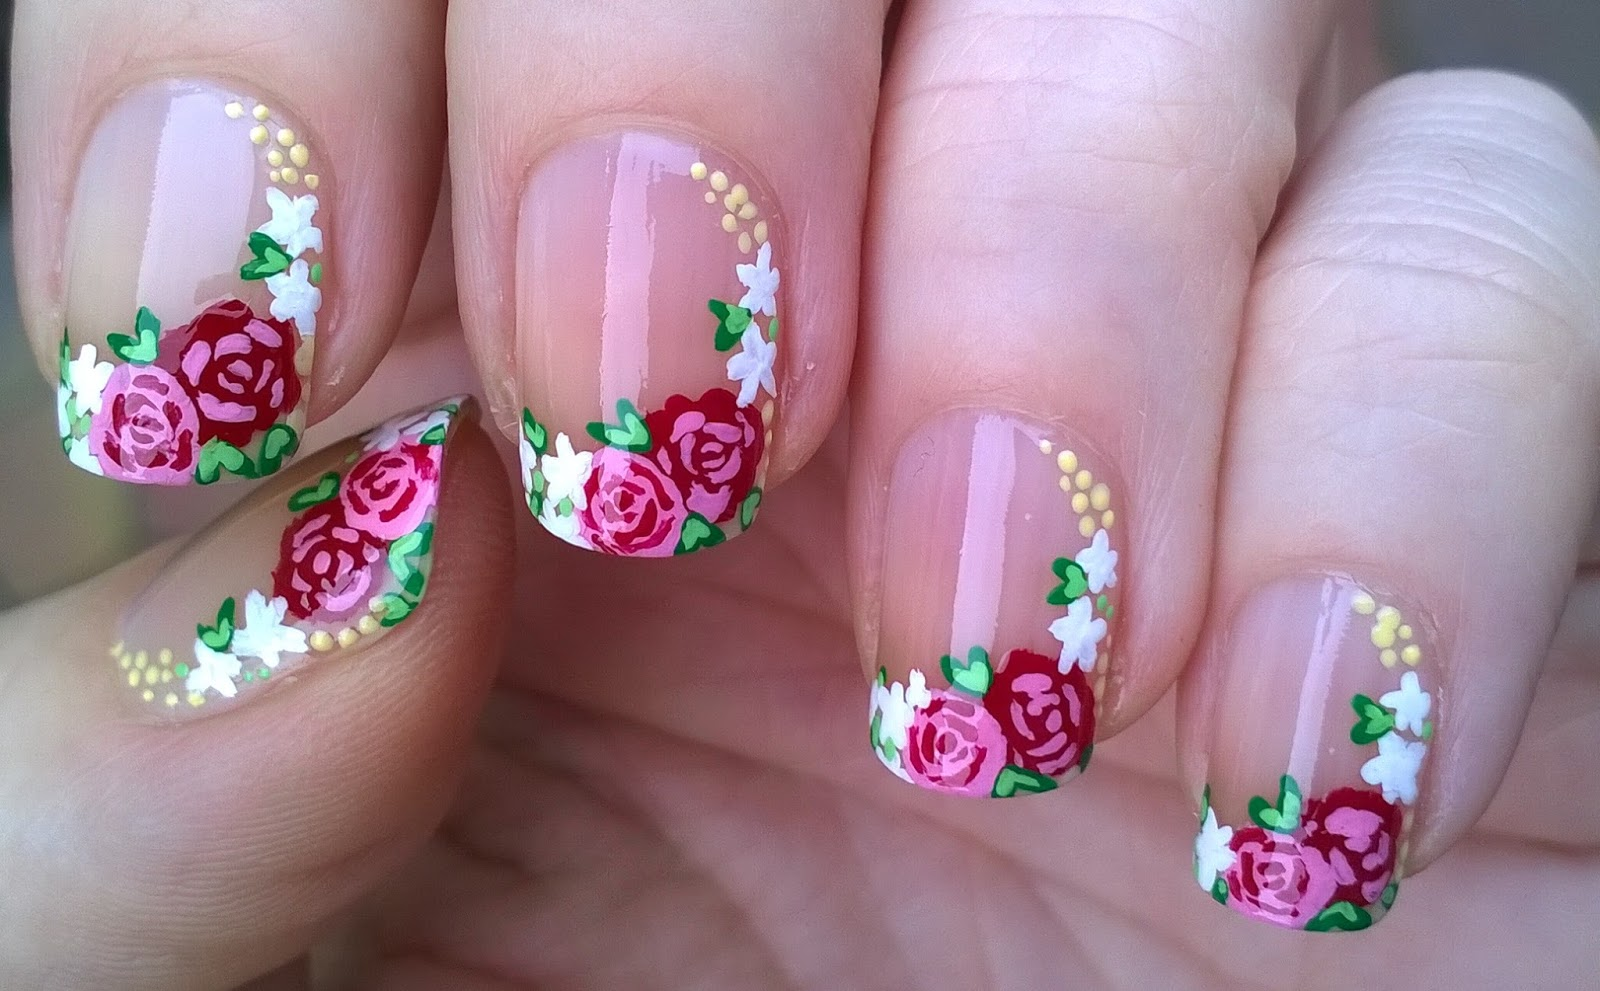 Life World Women: Floral Side French Tip Nails Using Acrylic Paint